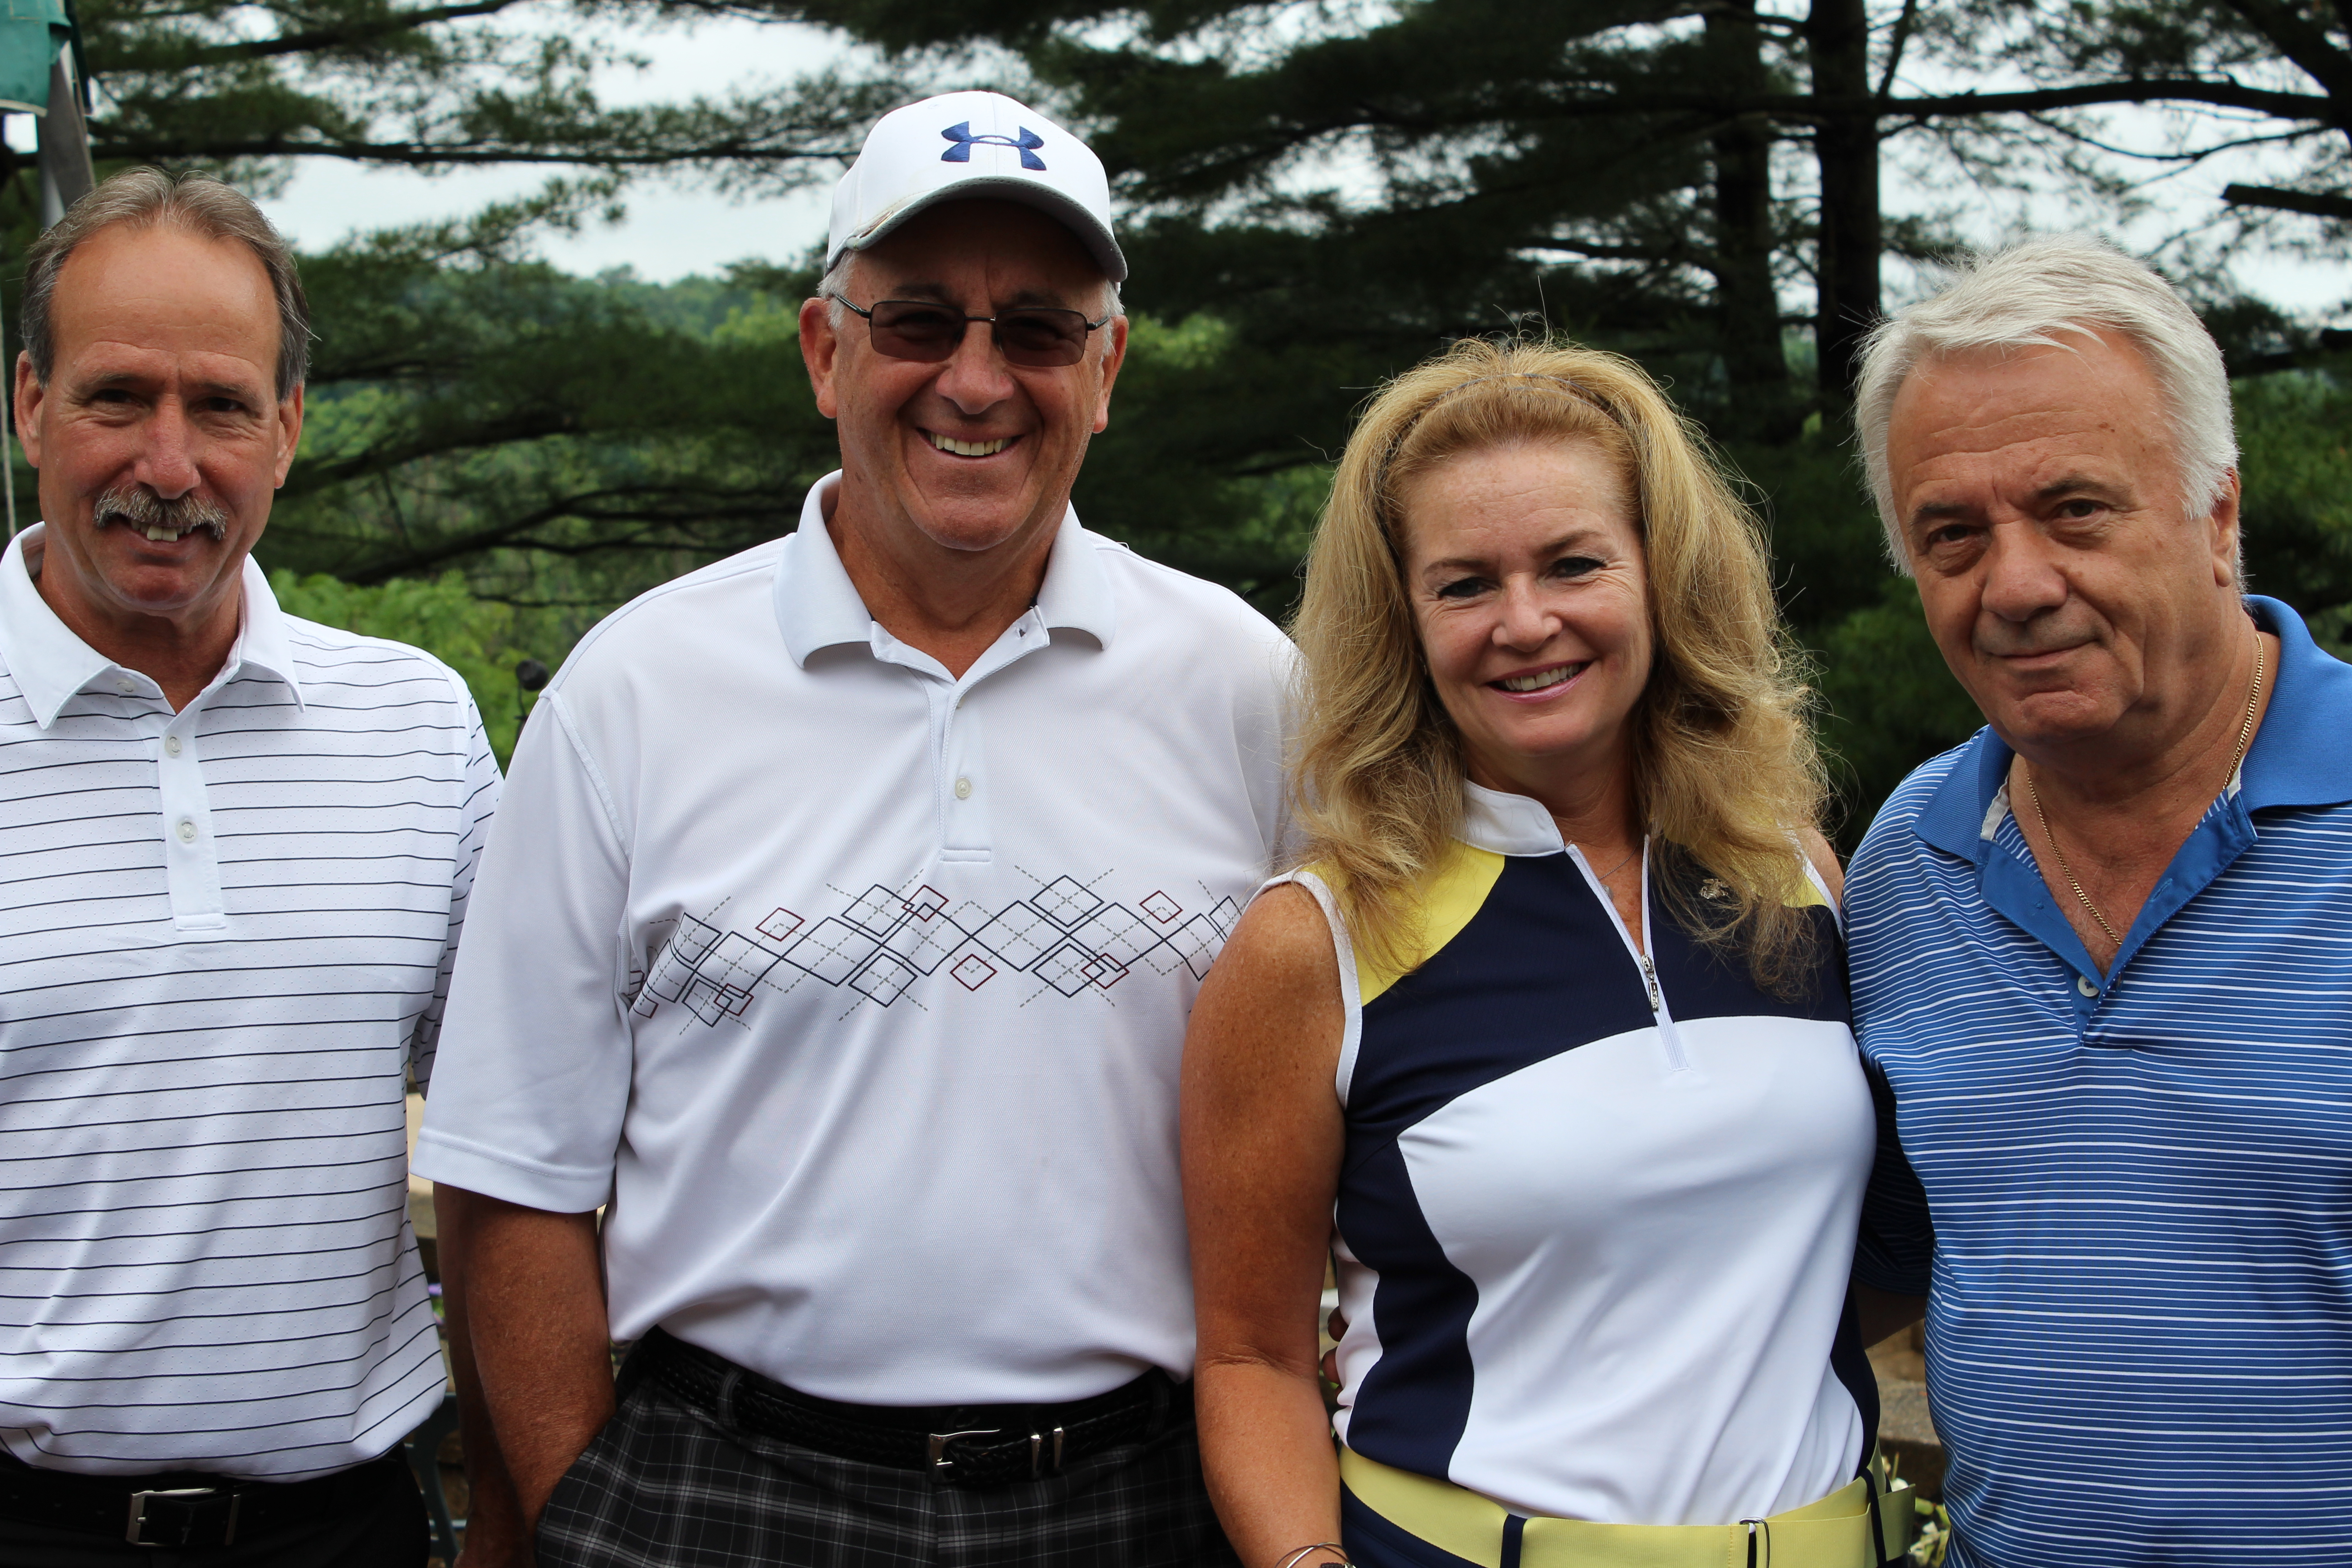 Scenes from MaryEllen Odell's Third Annual Golf Outing